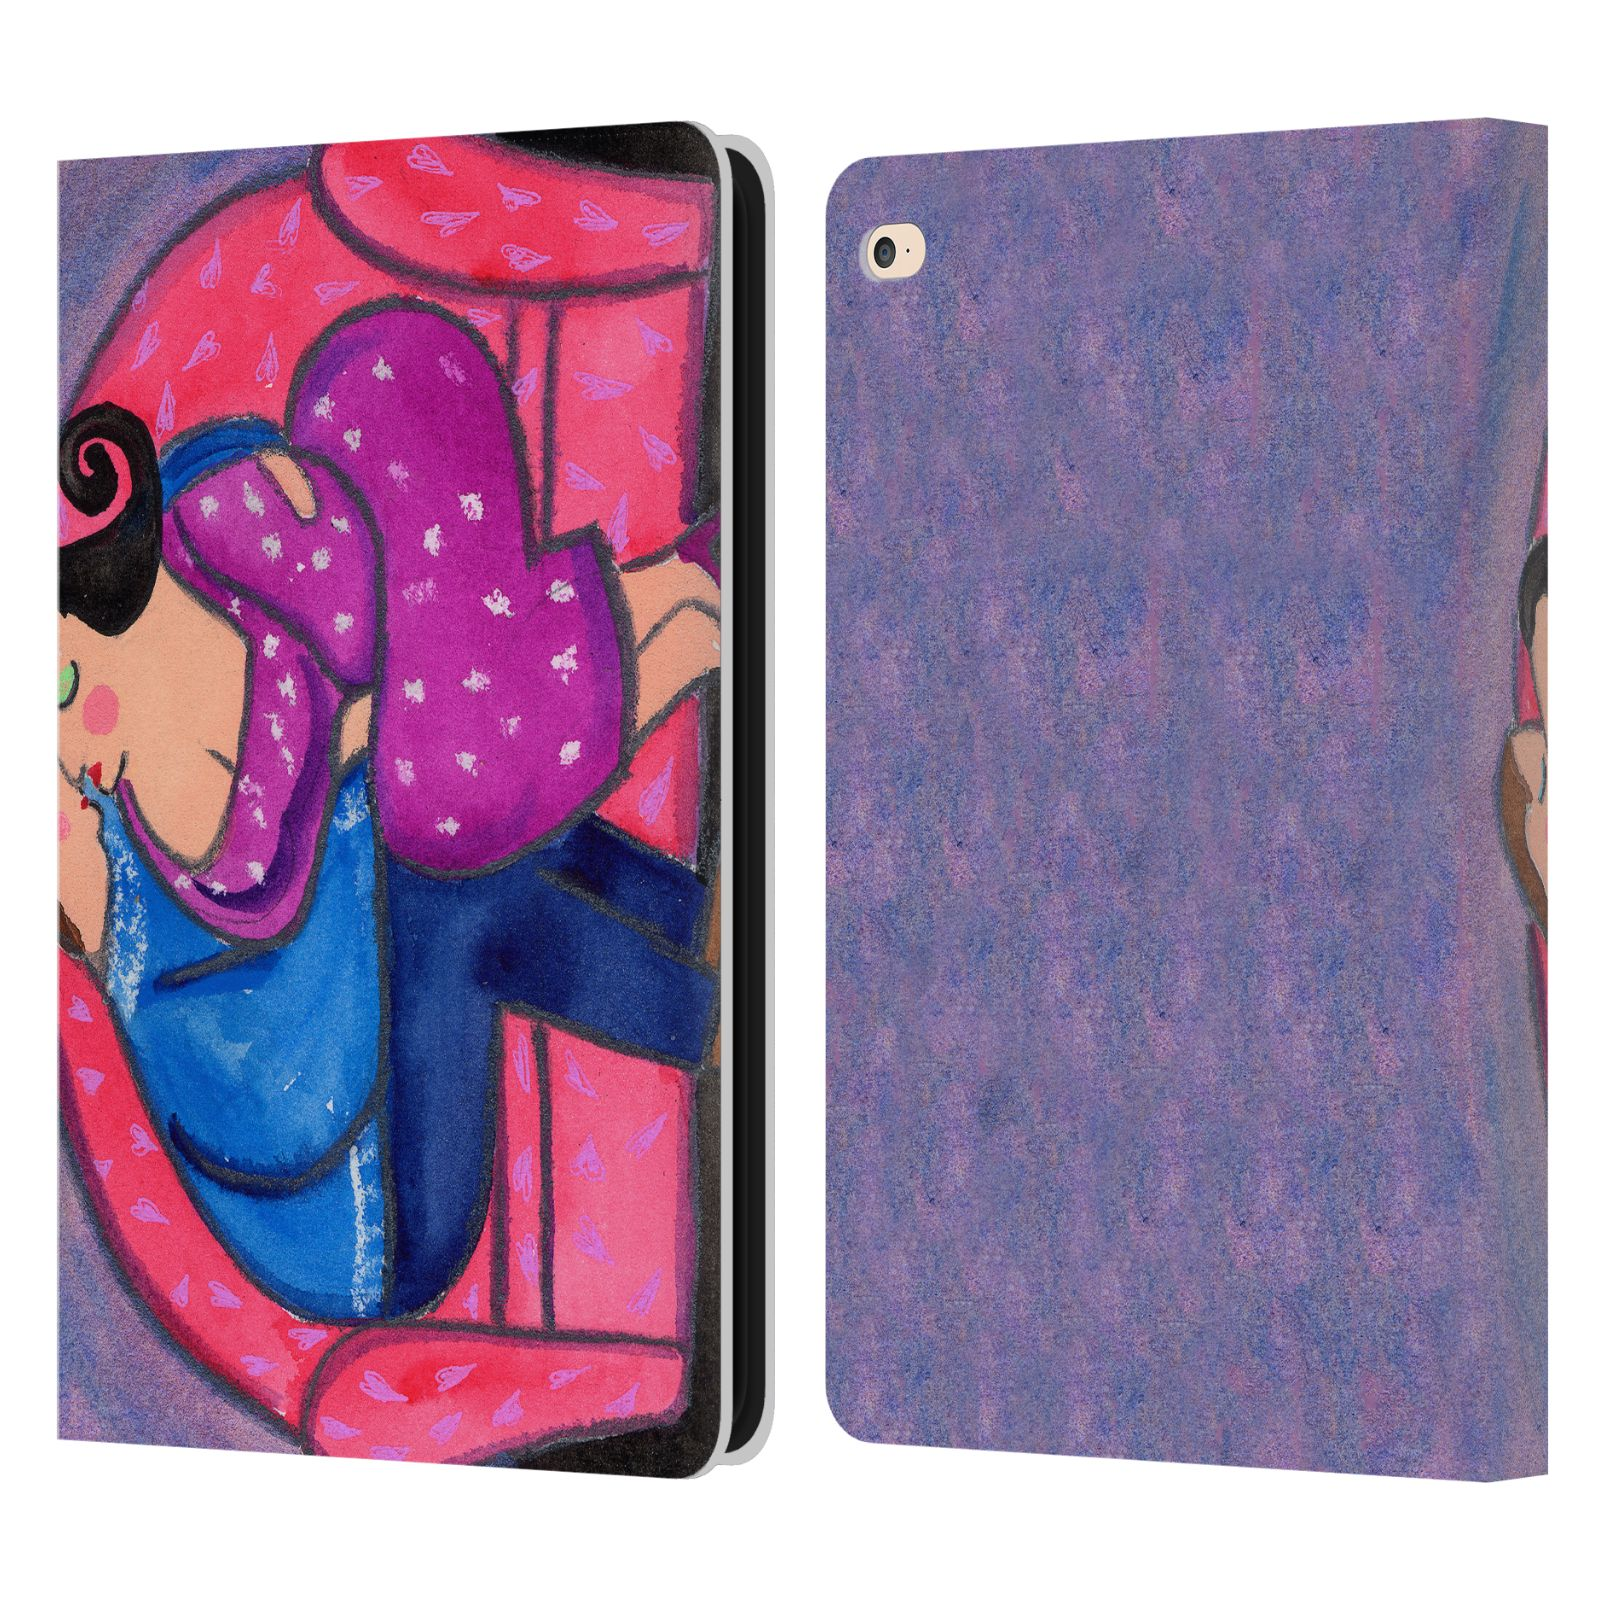 Best Ipad Book Cover : Official wyanne big diva leather book wallet case cover